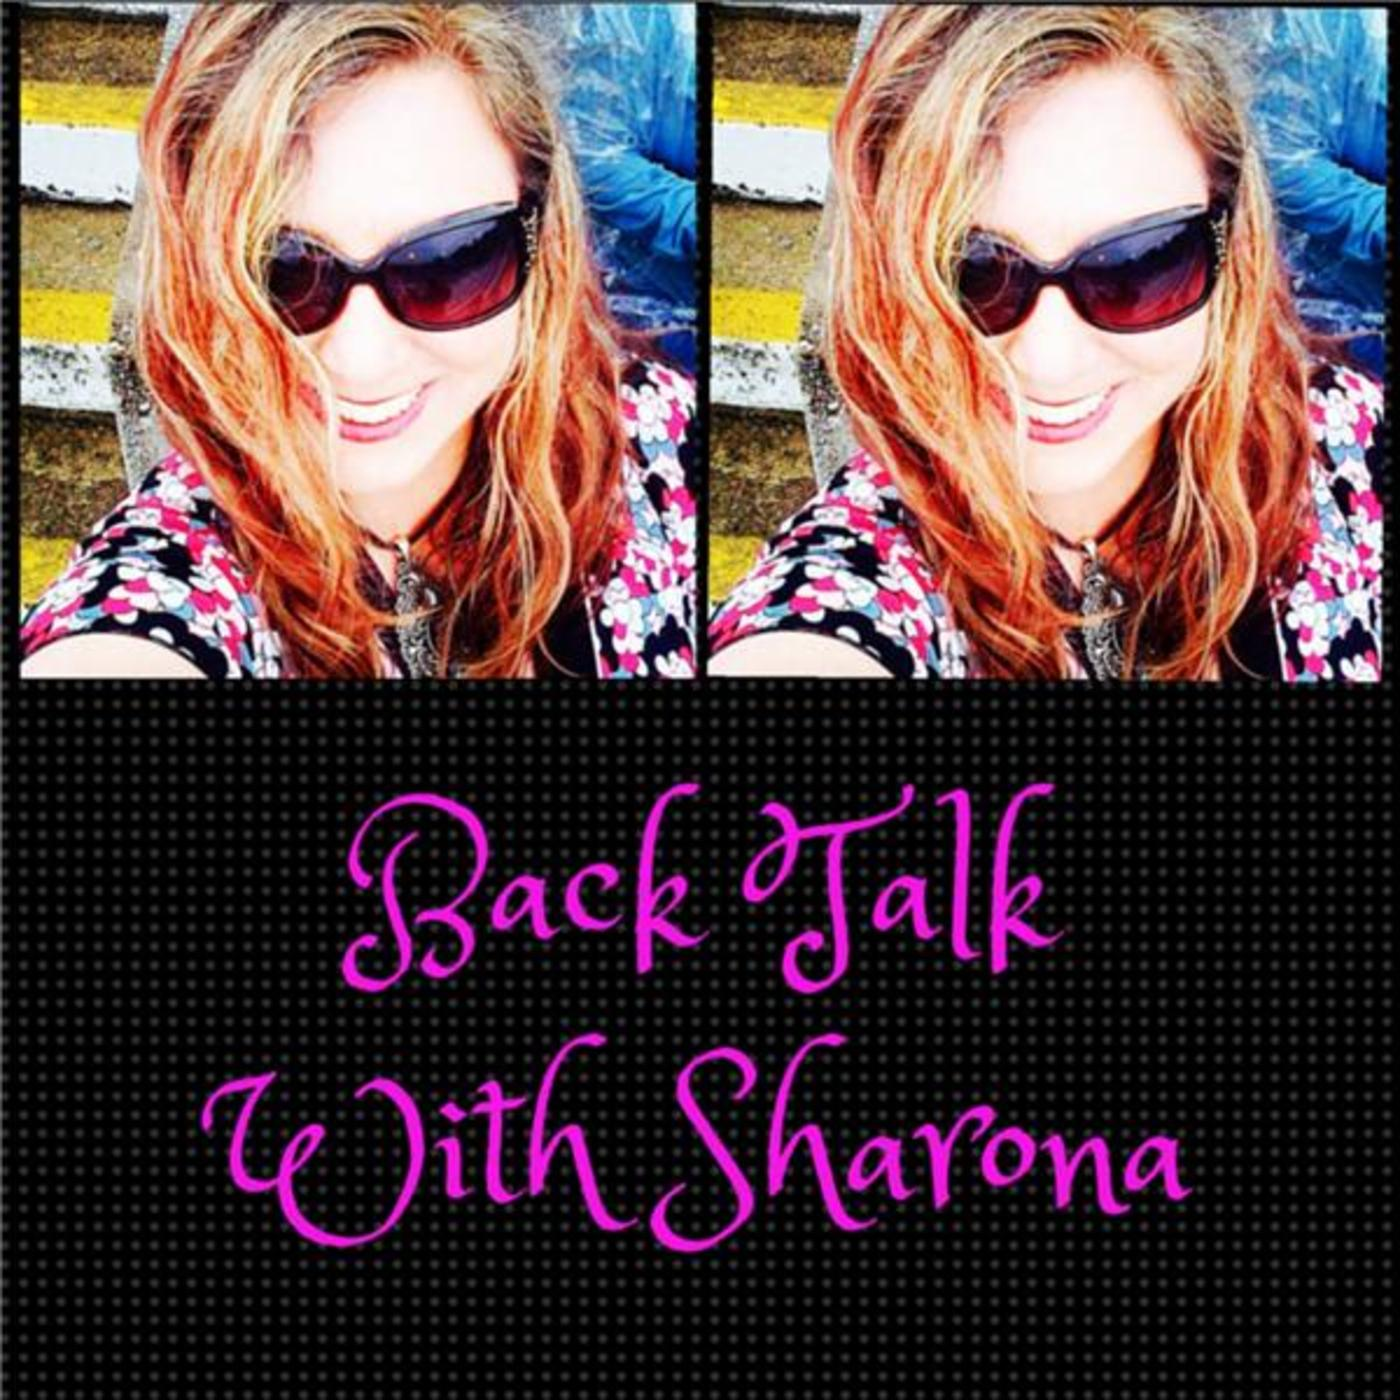 Back Talk With Sharona